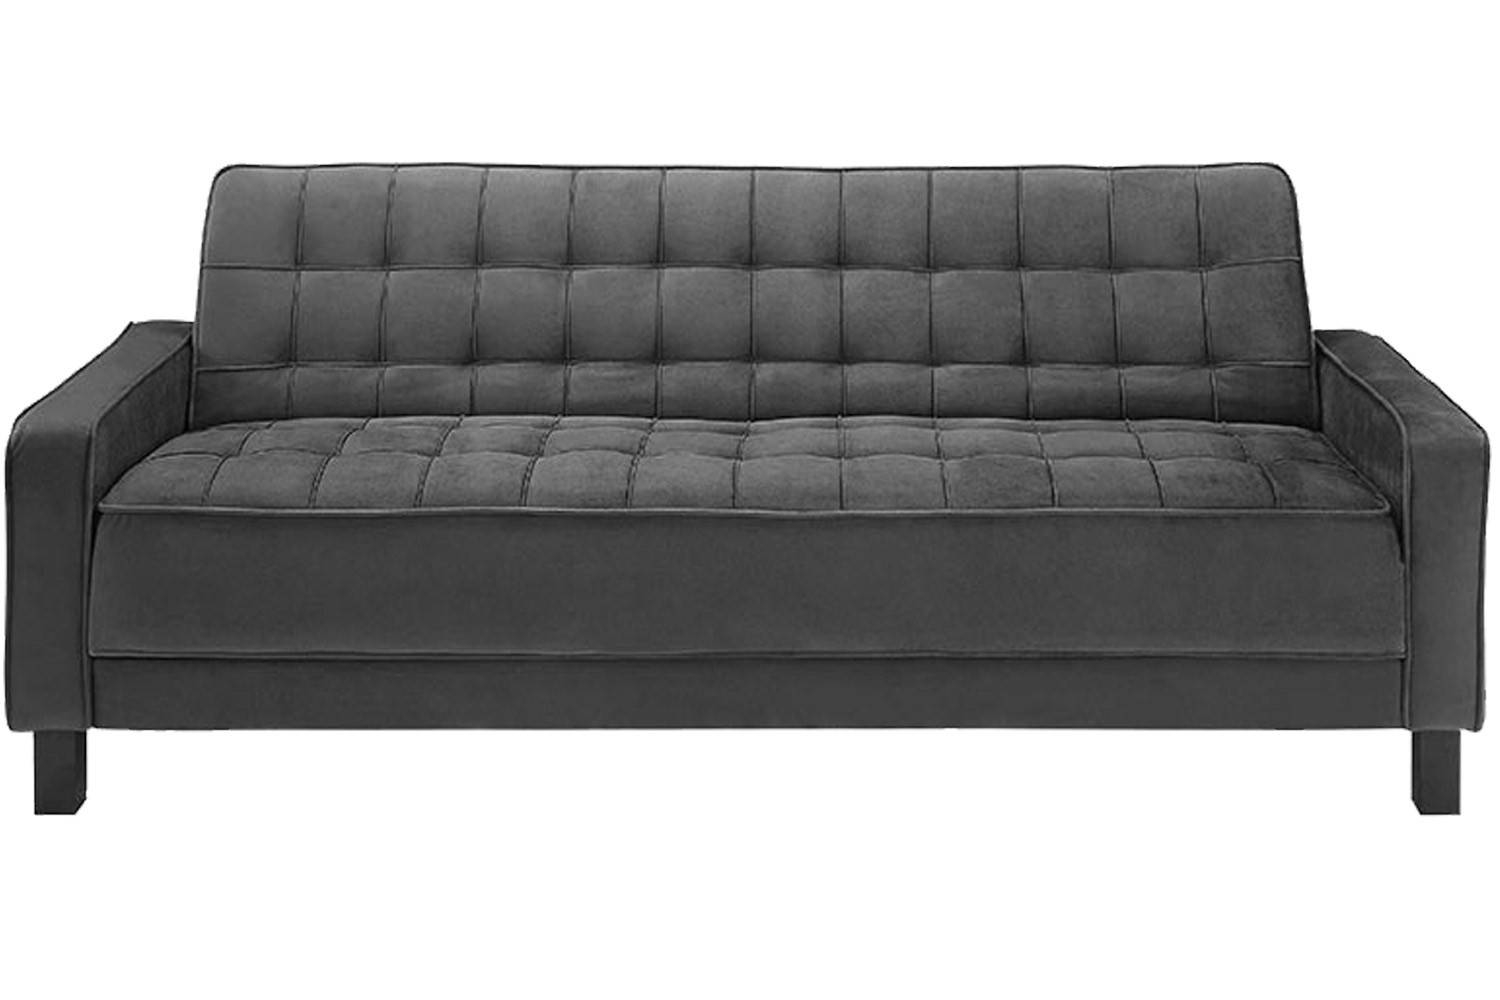 mckinley leather sofa costco where can i recycle my old 15 best collection of euro lounger beds